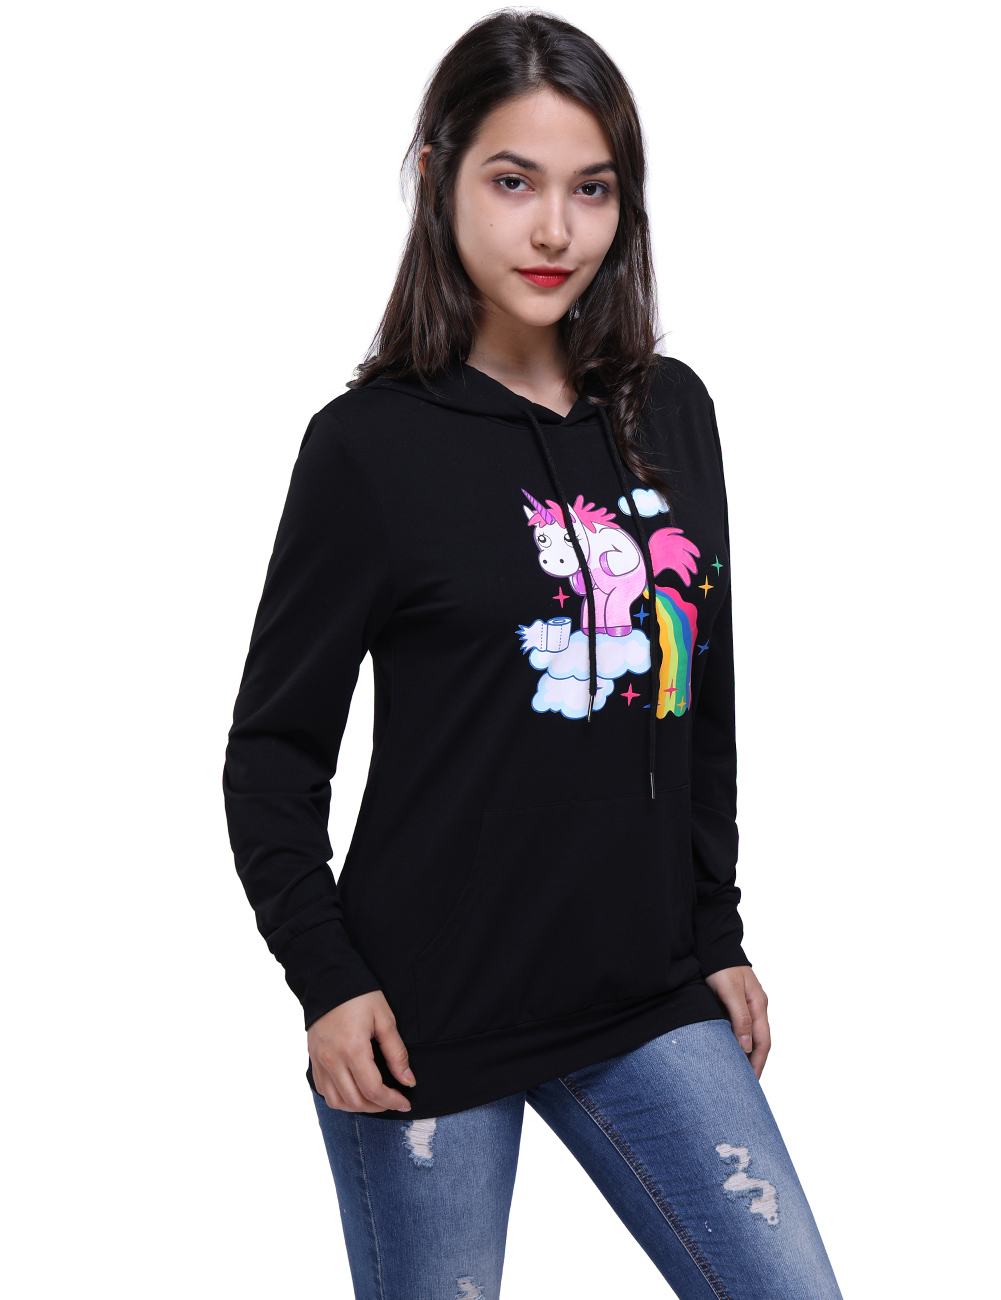 Autumn Winter Women Hoodies Long Sleeve Fashion Horse Printed Funny Hip Hop Fleece Hoodies Clothing